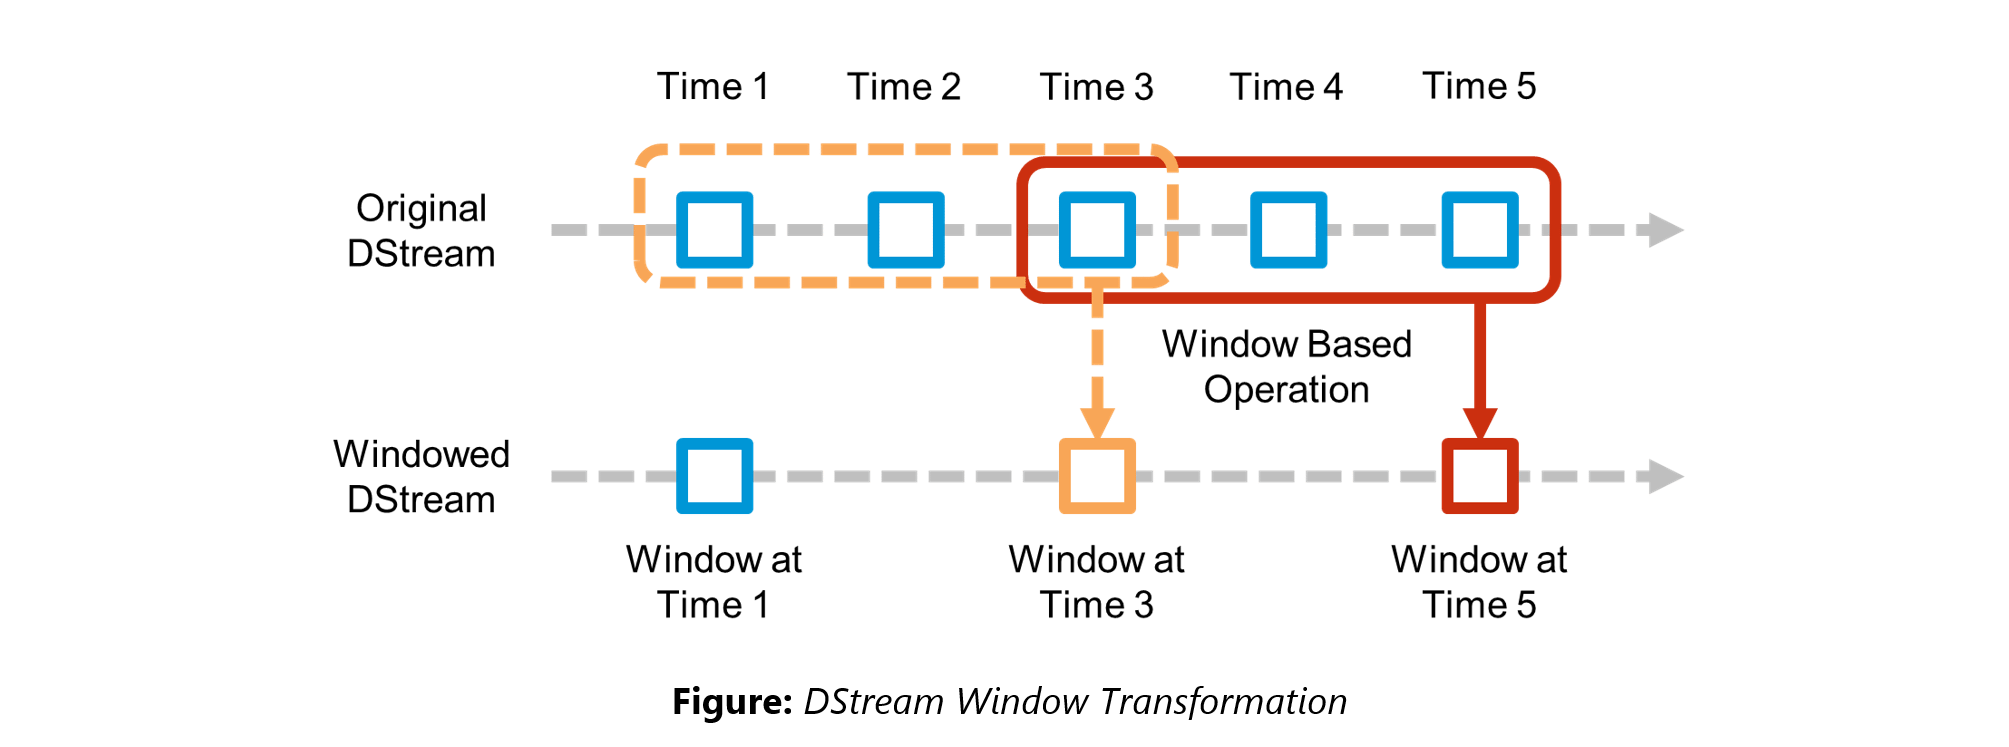 DStream Sliding Window - Spark Interview Questions - Edureka